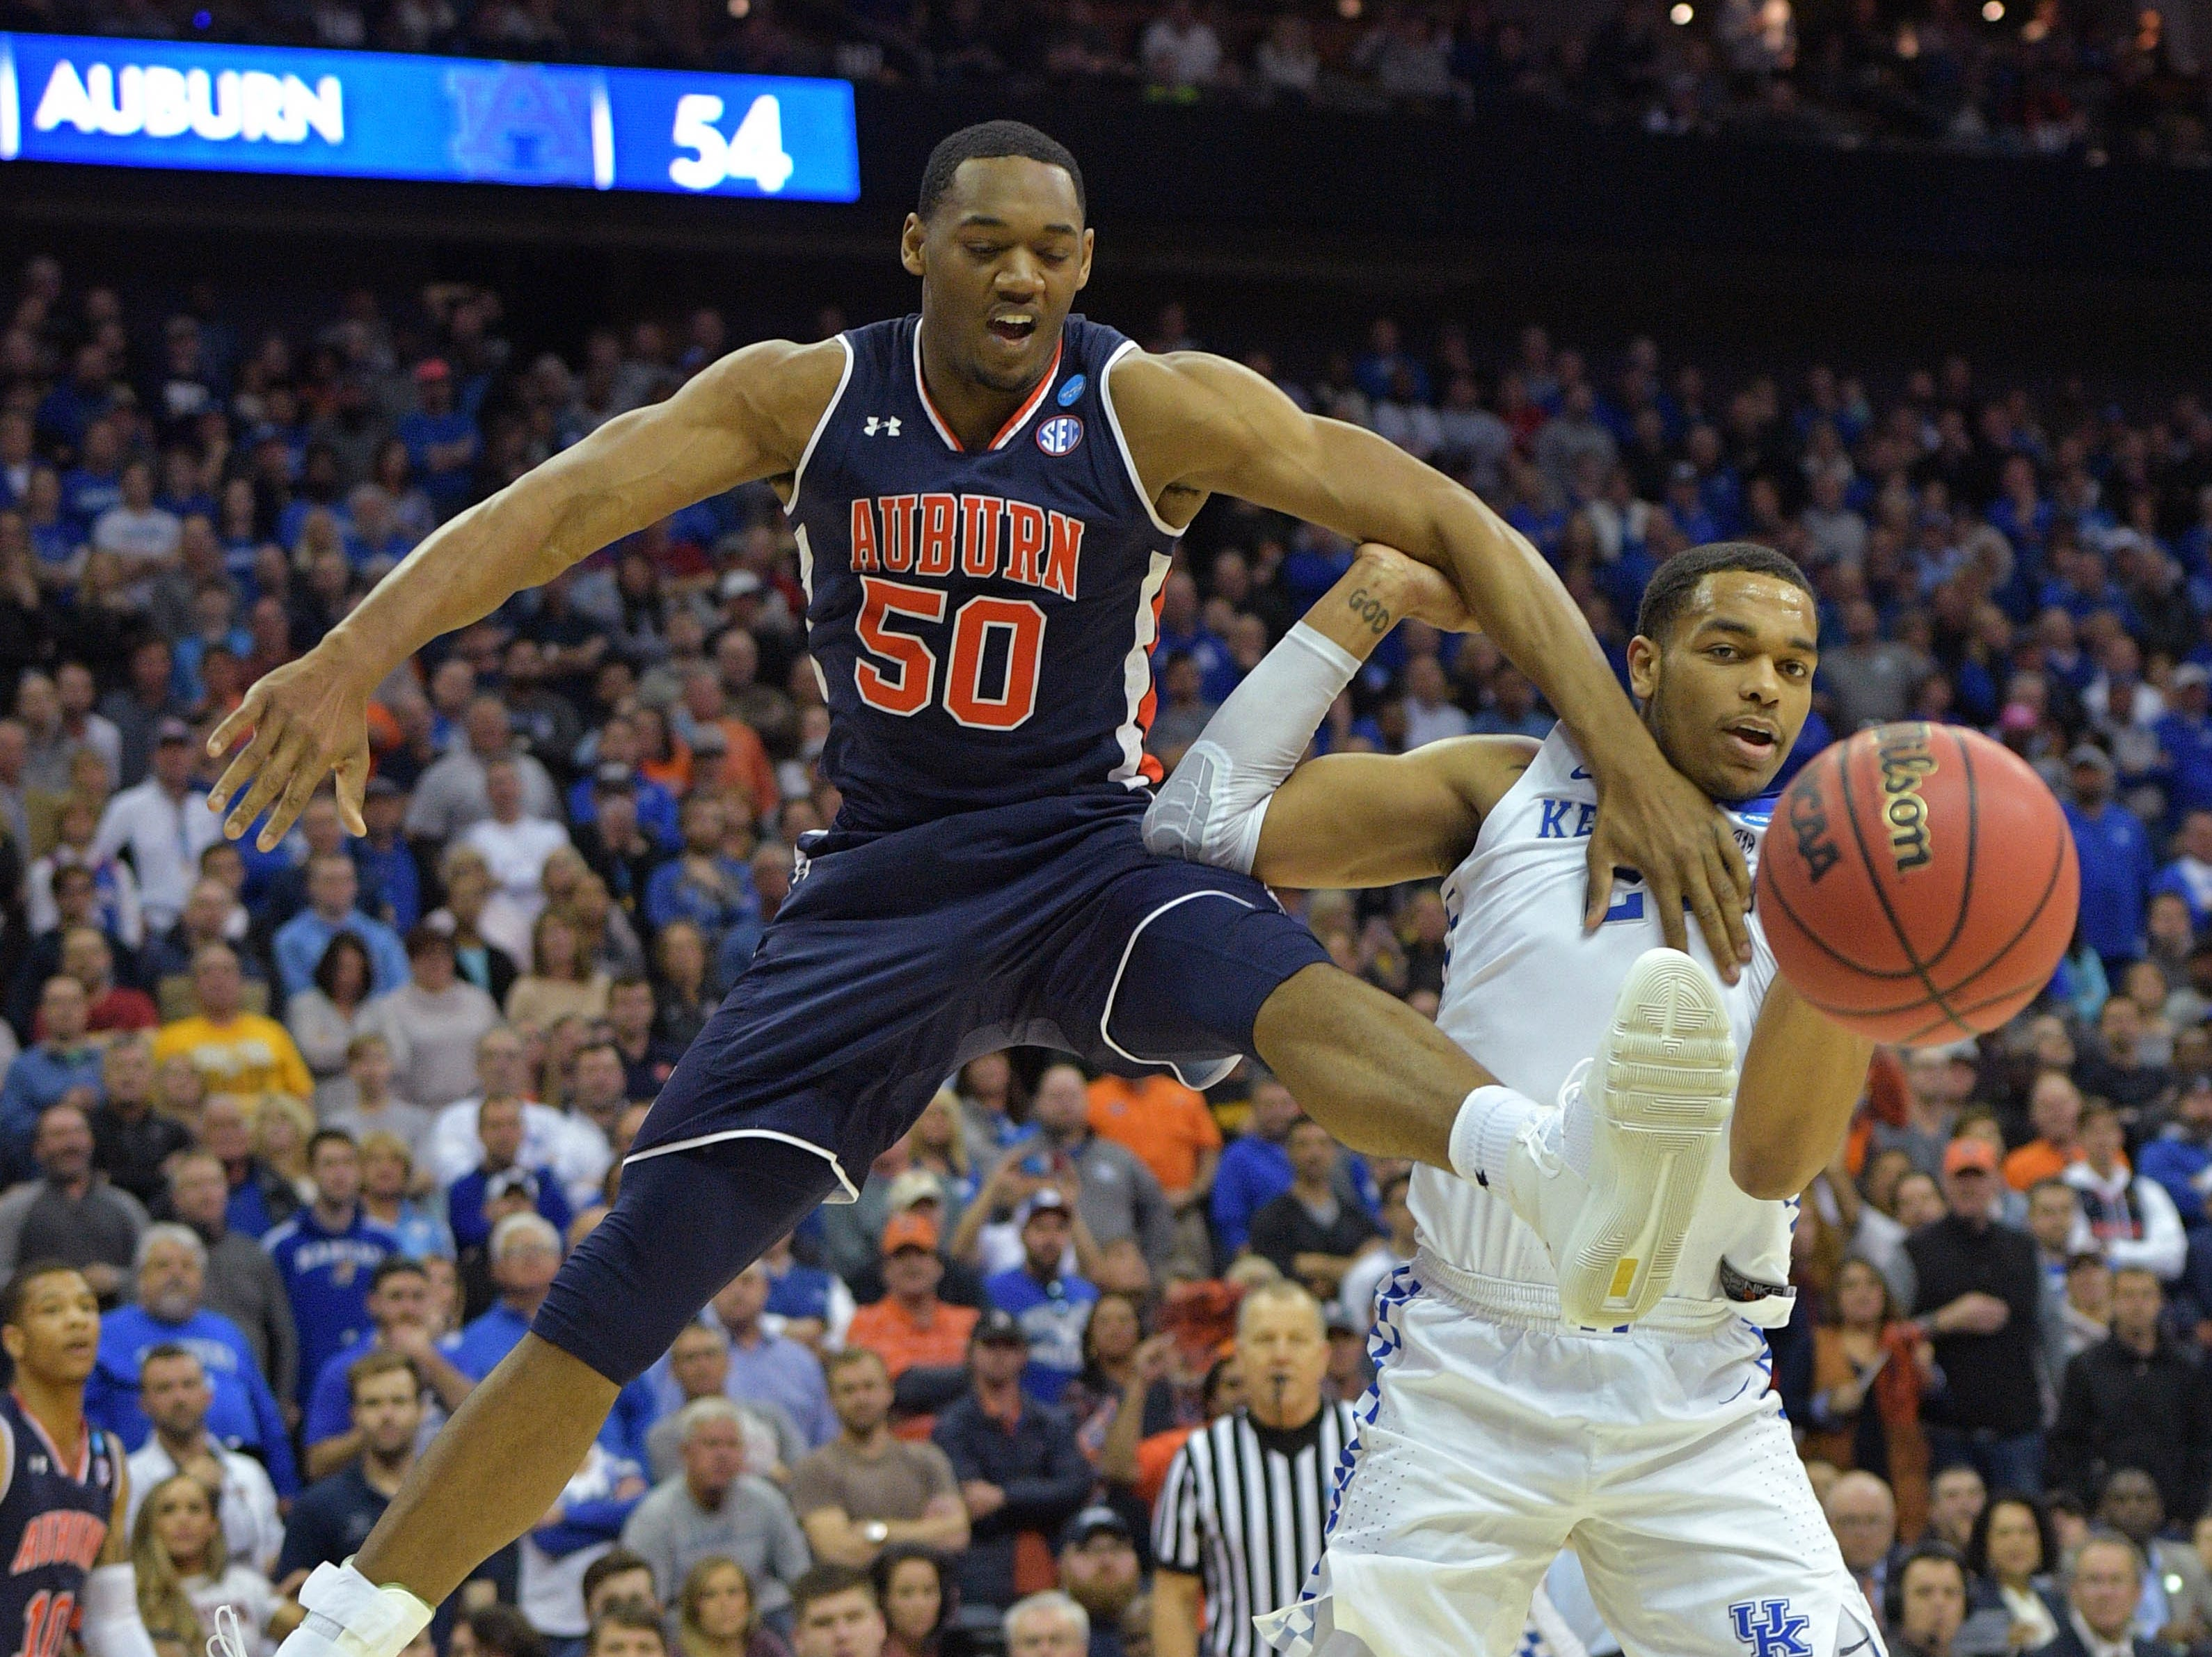 Mar 31, 2019; Kansas City, MO, United States; Auburn Tigers center Austin Wiley (50) chases a rebound with Kentucky Wildcats forward PJ Washington (25) during the second half in the championship game of the midwest regional of the 2019 NCAA Tournament at Sprint Center. Mandatory Credit: Denny Medley-USA TODAY Sports